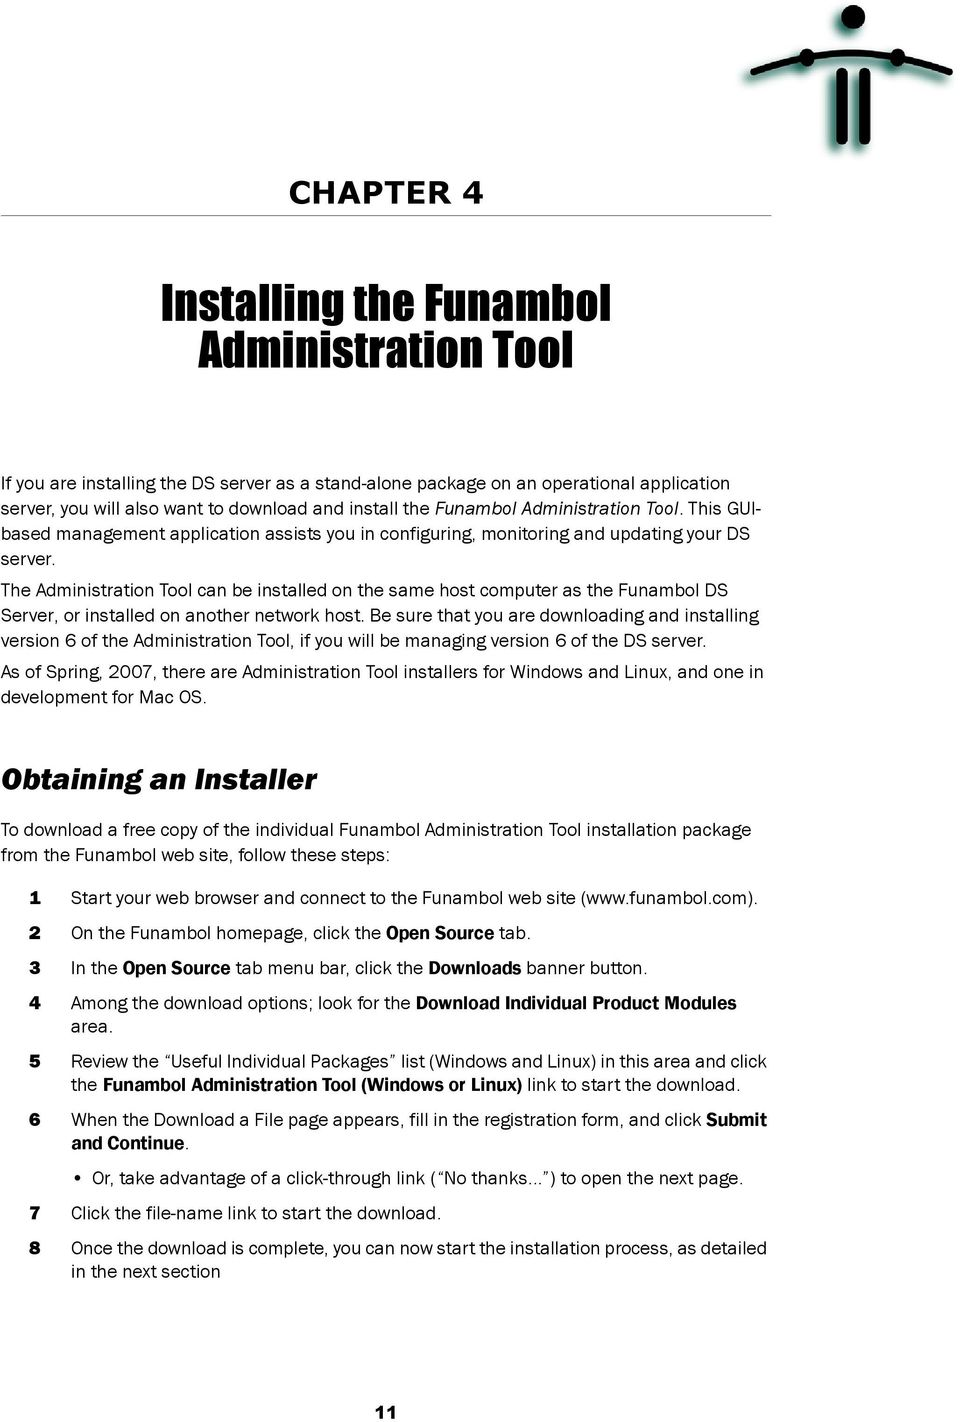 The Administration Tool can be installed on the same host computer as the Funambol DS Server, or installed on another network host.